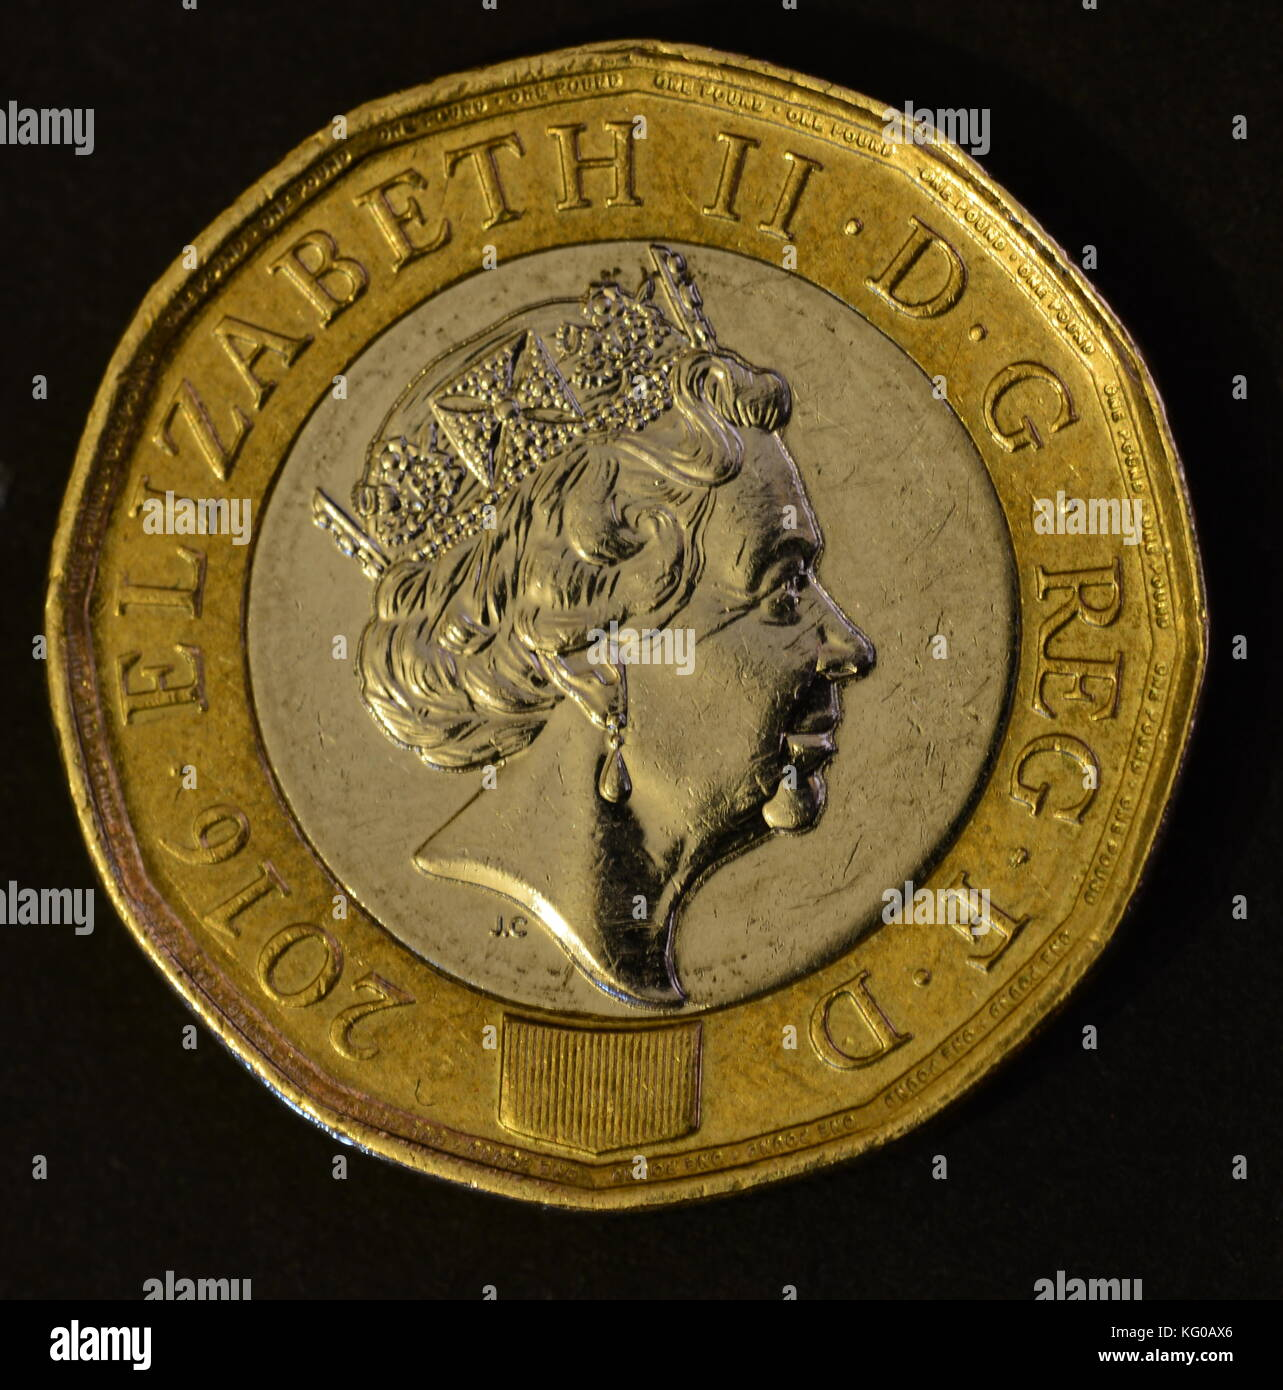 Pound coin - Stock Image